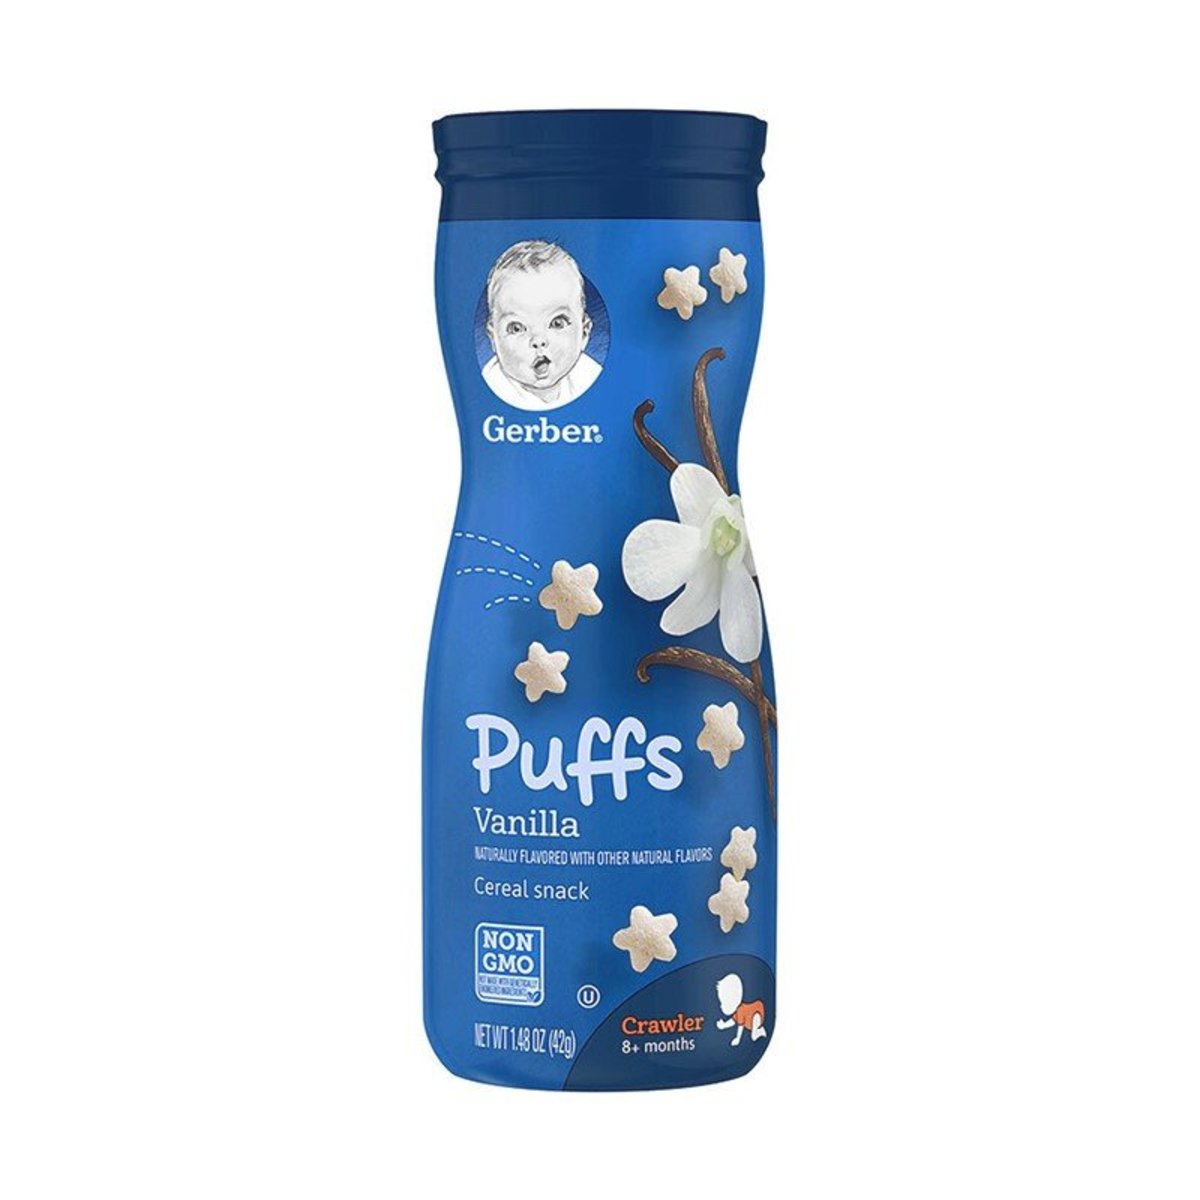 Vanilia Puffs Cereal Snack 42g(8+months)(parallel import)